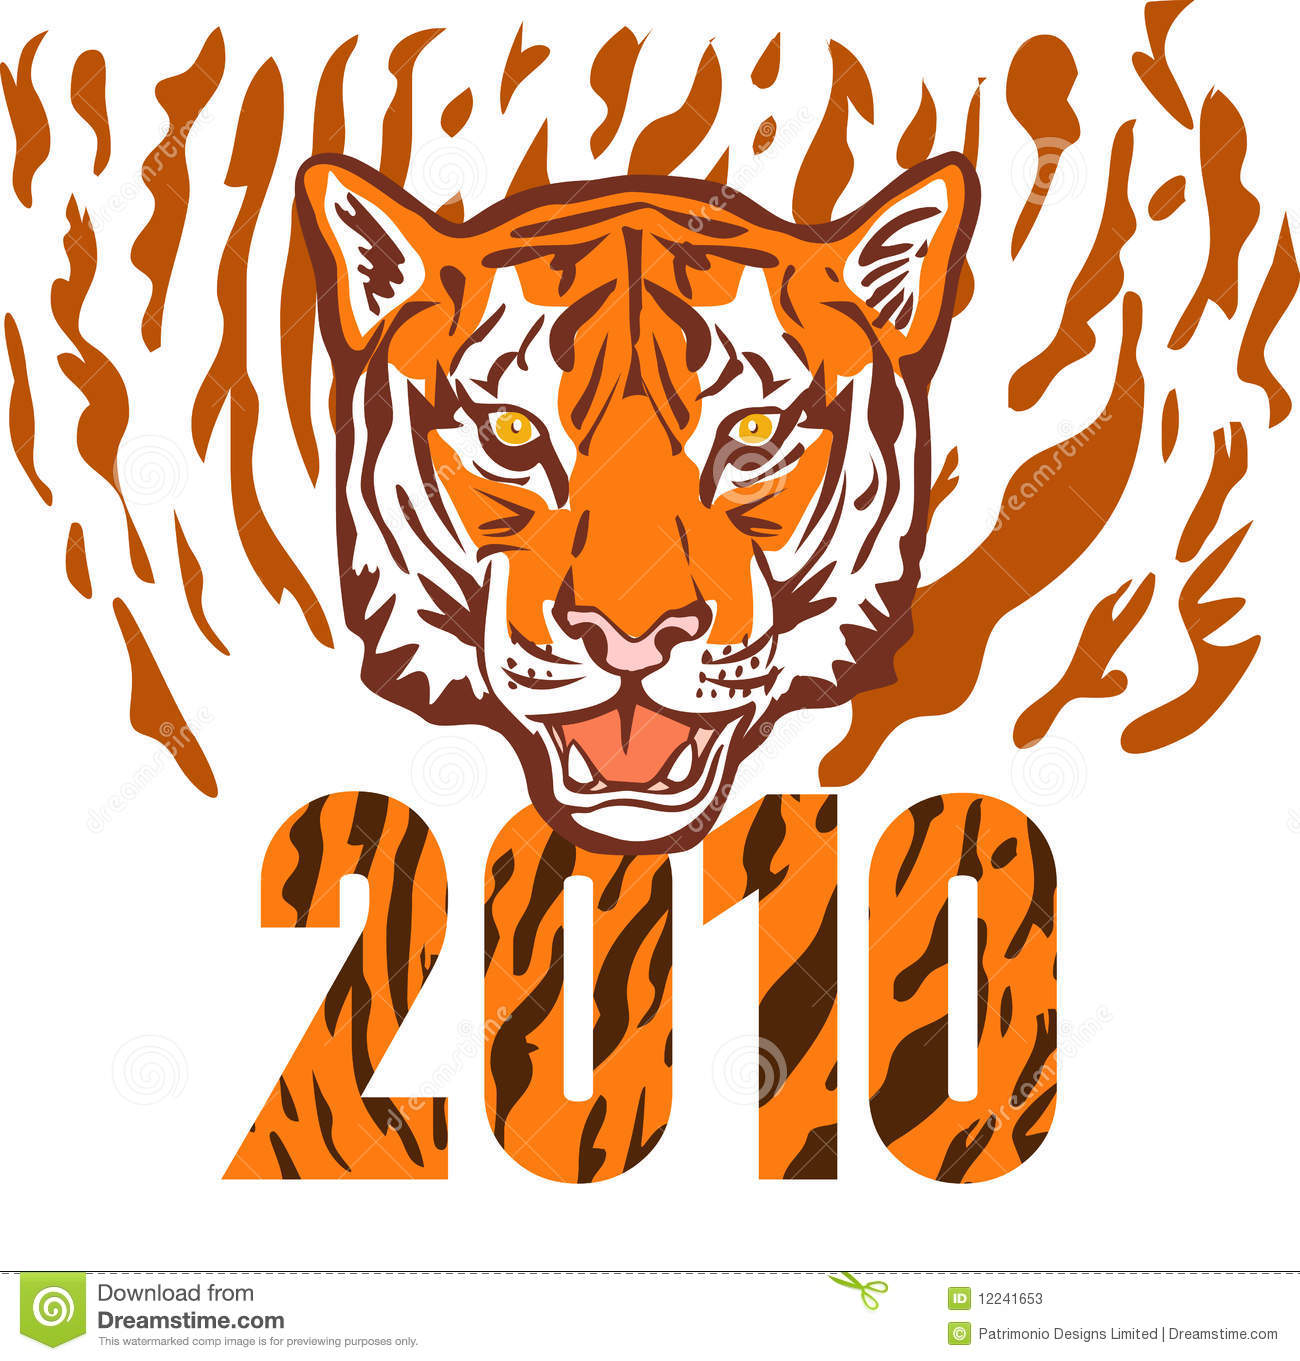 1974 Chinese Zodiac – The Year of the Tiger